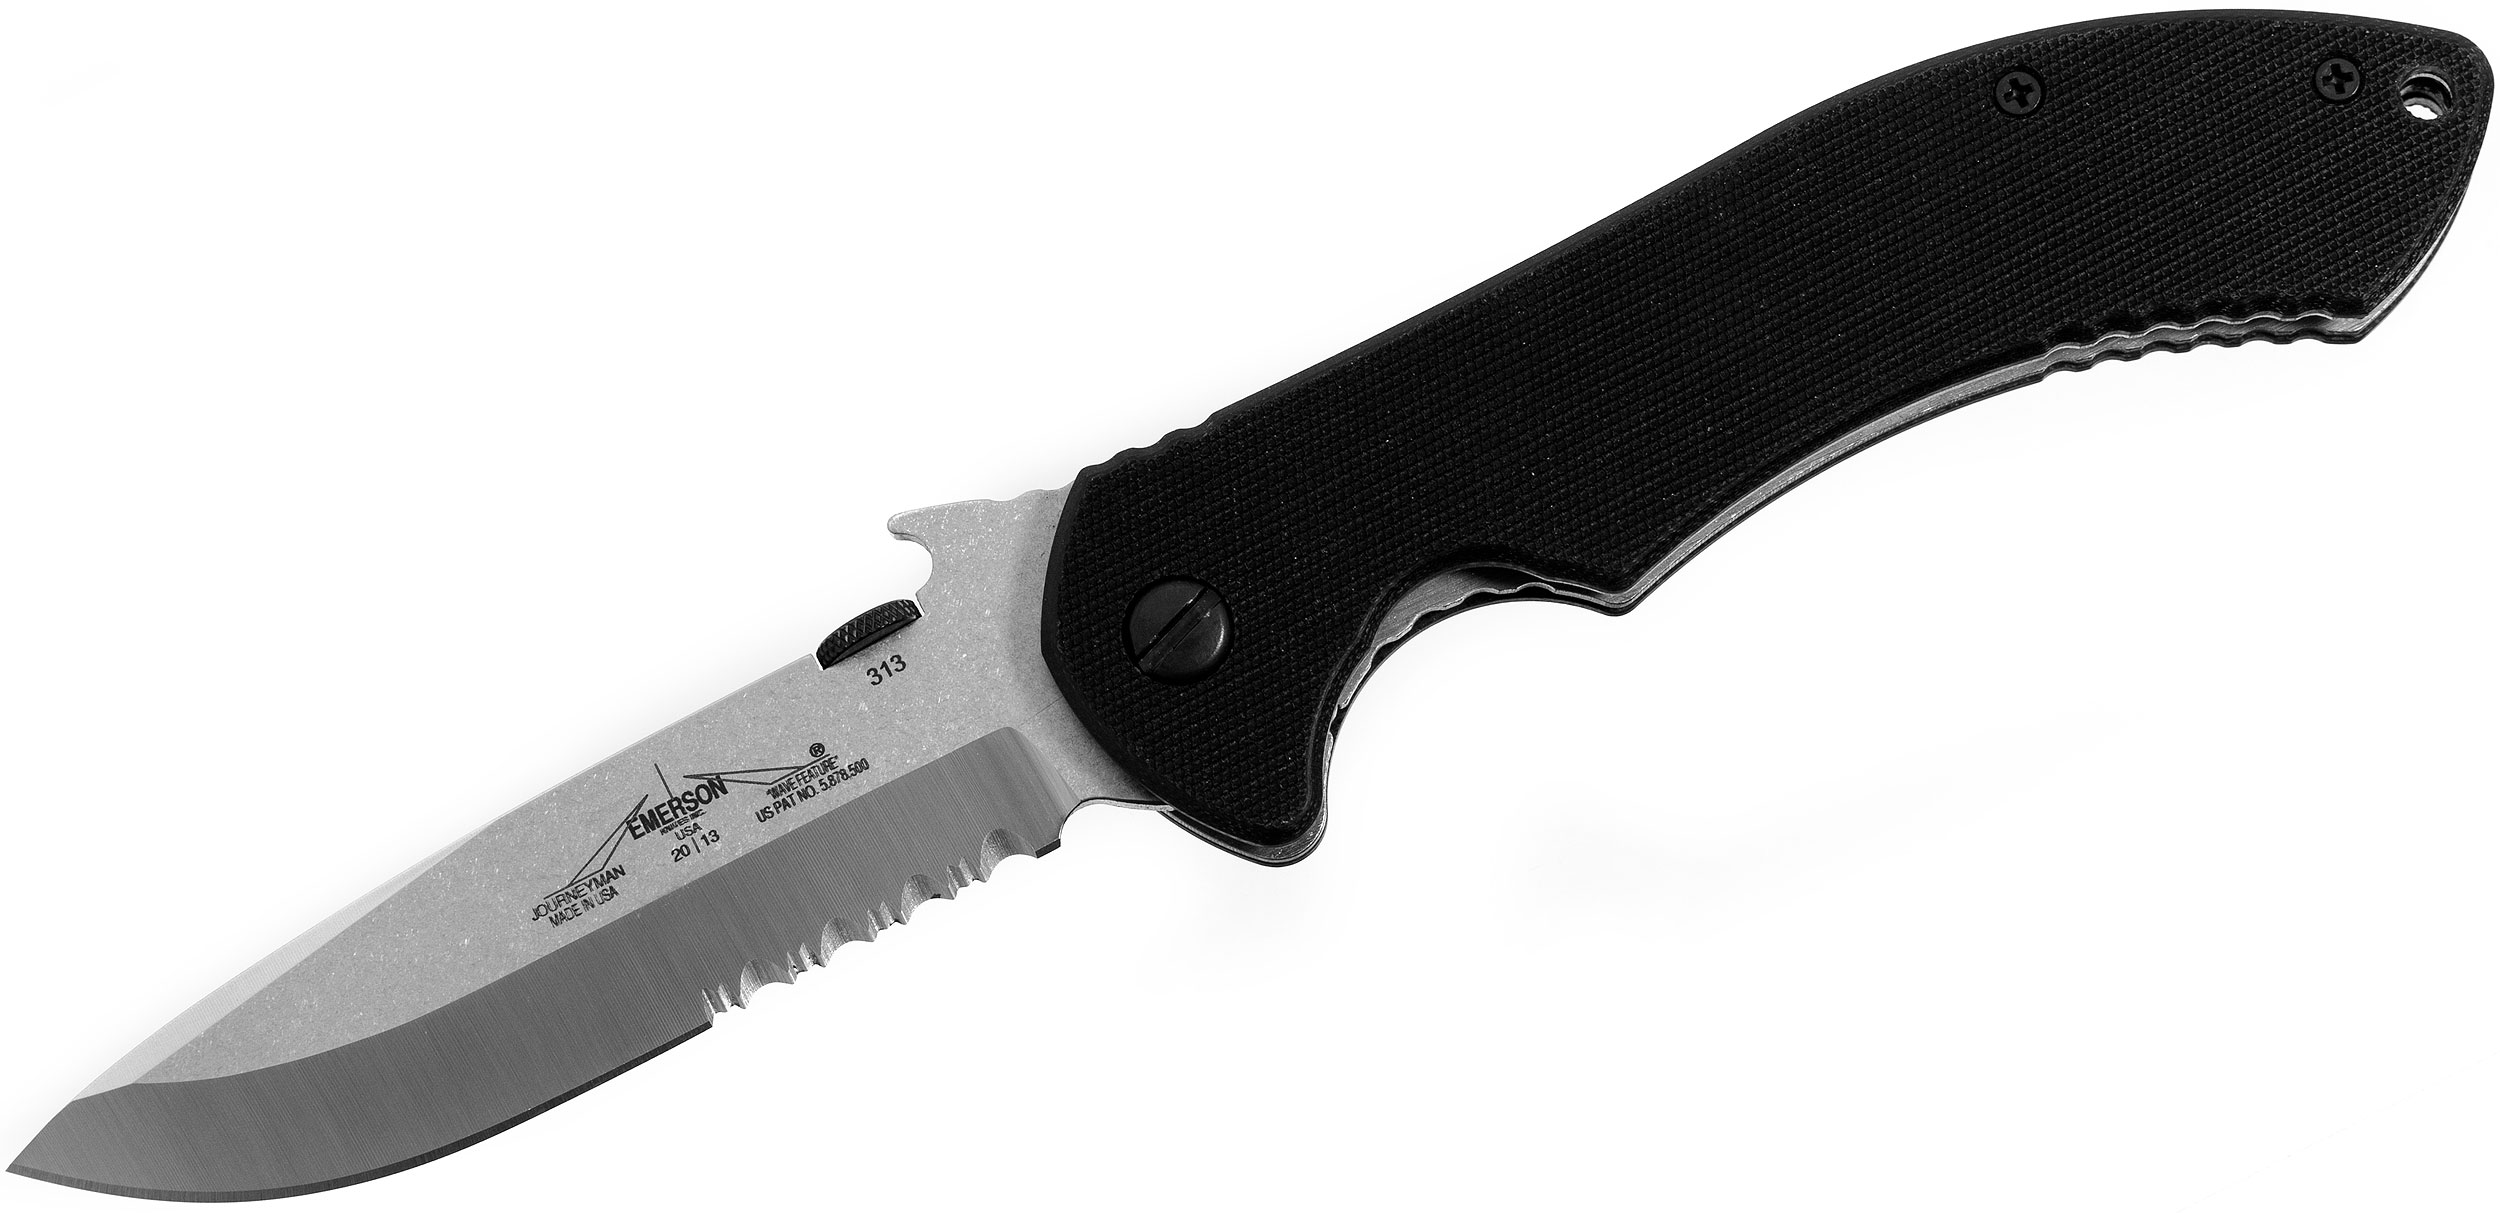 Buy Emerson Journeyman Folding Knife Series at KnifeCenter